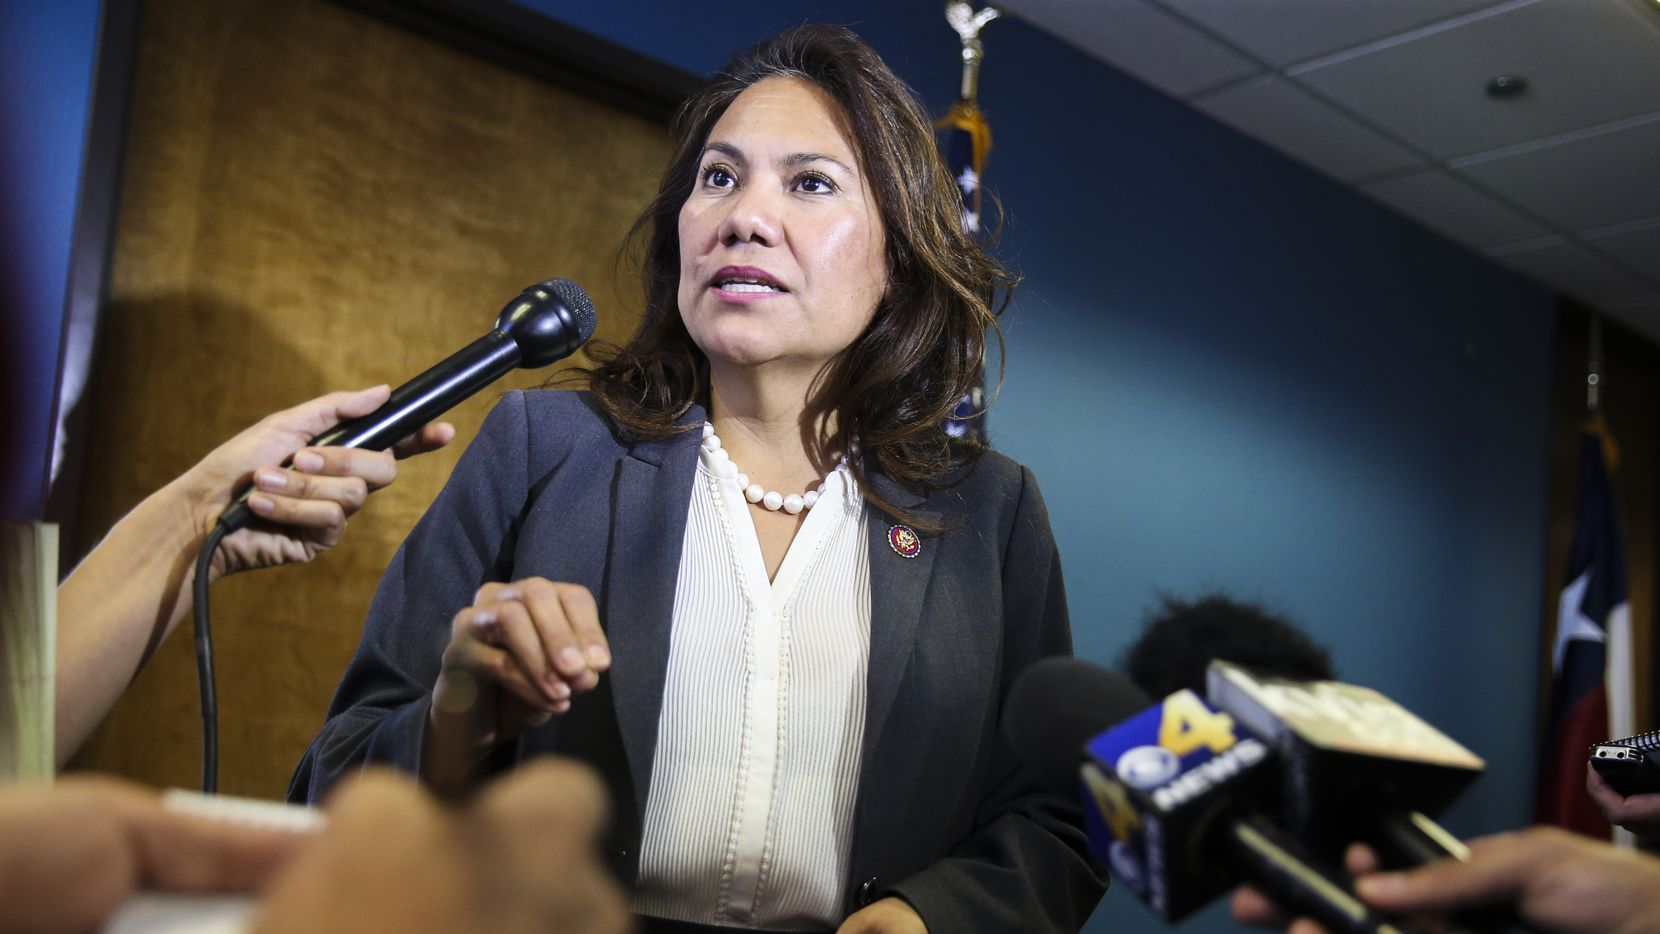 Rep. Veronica Escobar, D-El Paso, shown here last summer, criticized President Donald Trump's immigration policies in the Democrats' Spanish-language rebuttal to the president's State of the Union address.